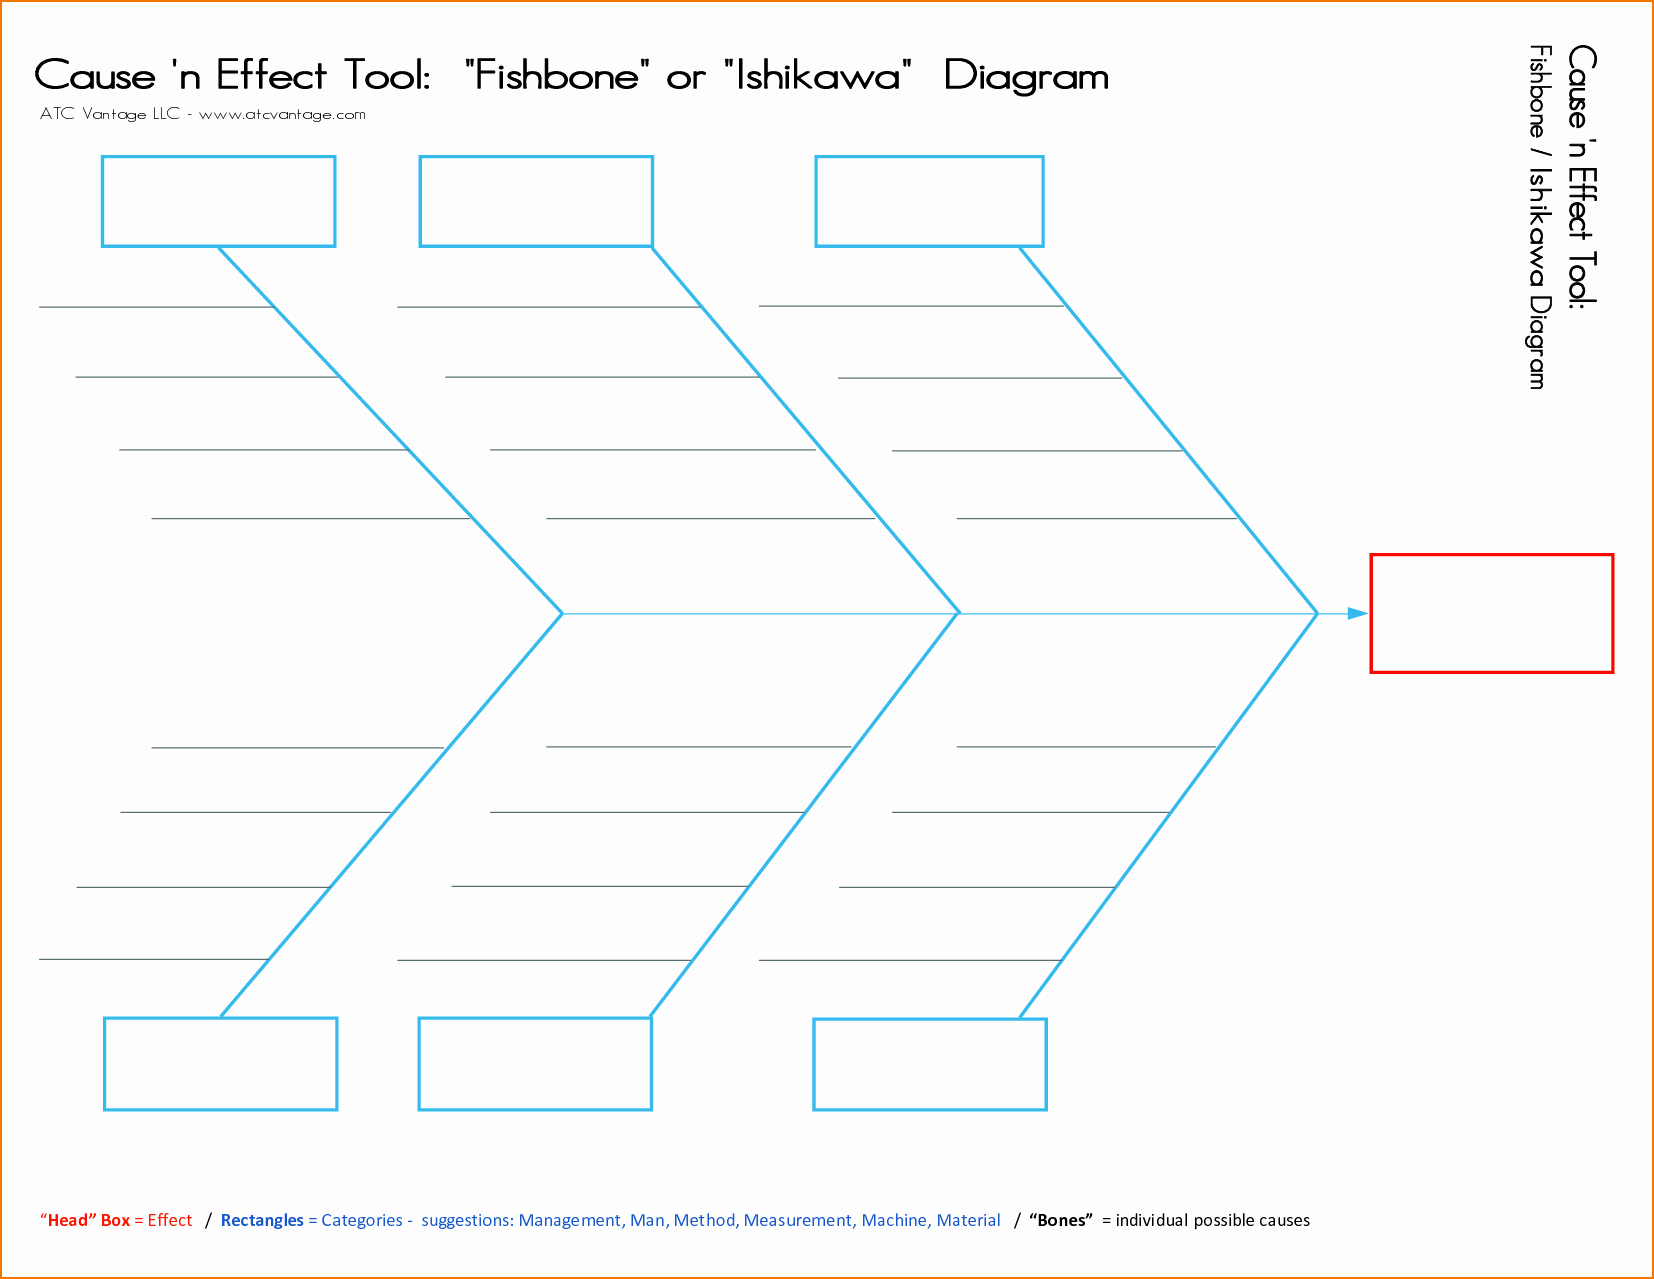 Fishbone Diagram Template Word Inspirational 4 Cause and Effect Diagram Template